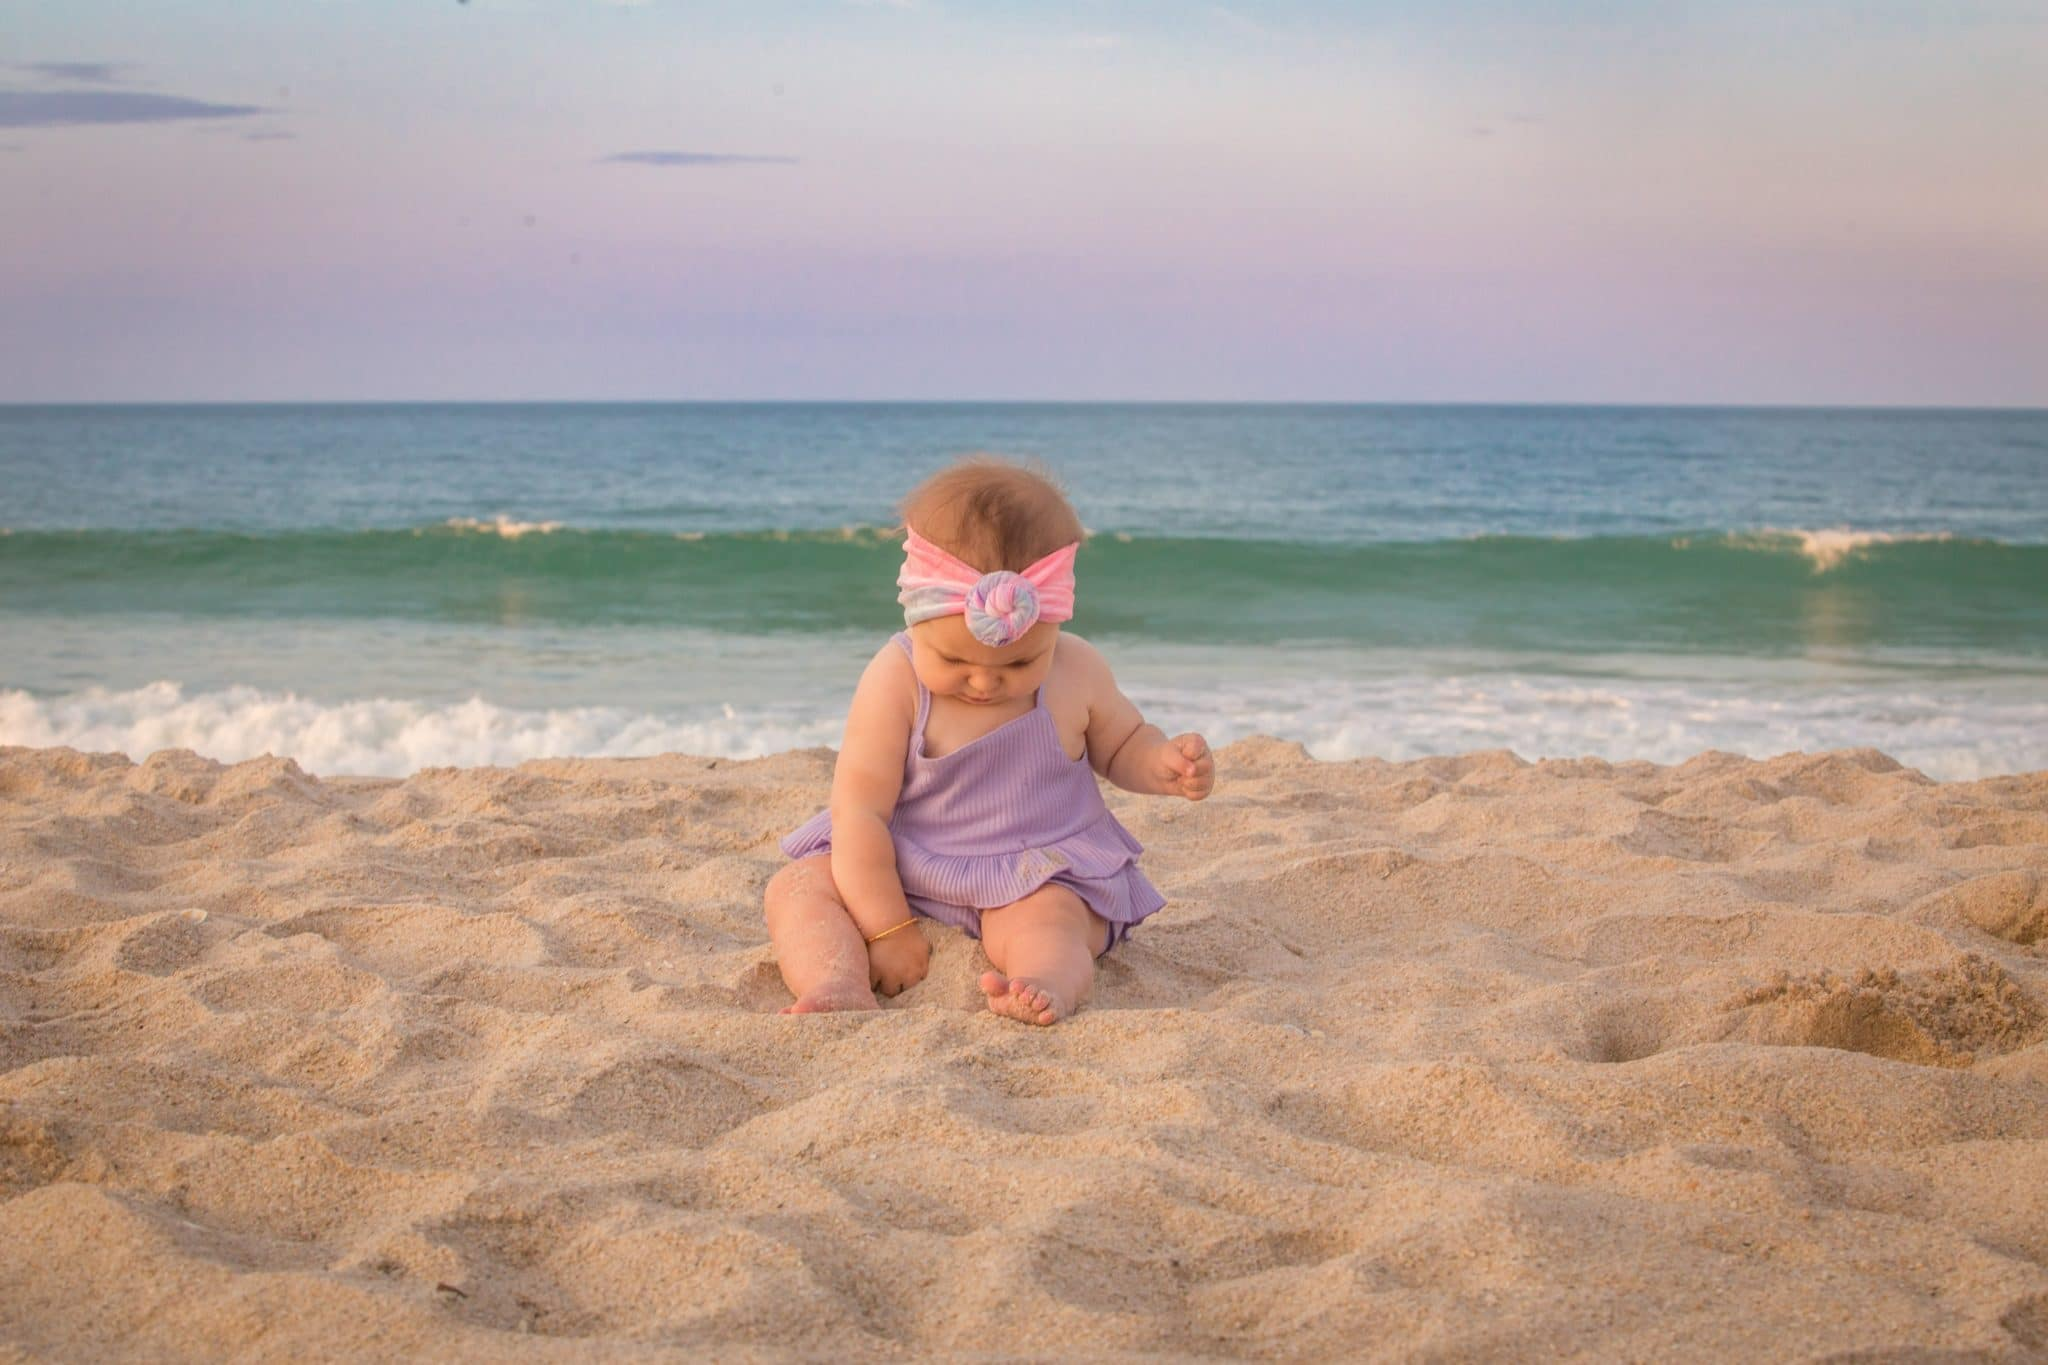 Baby playing in the sand on Melbourne beach in Florida